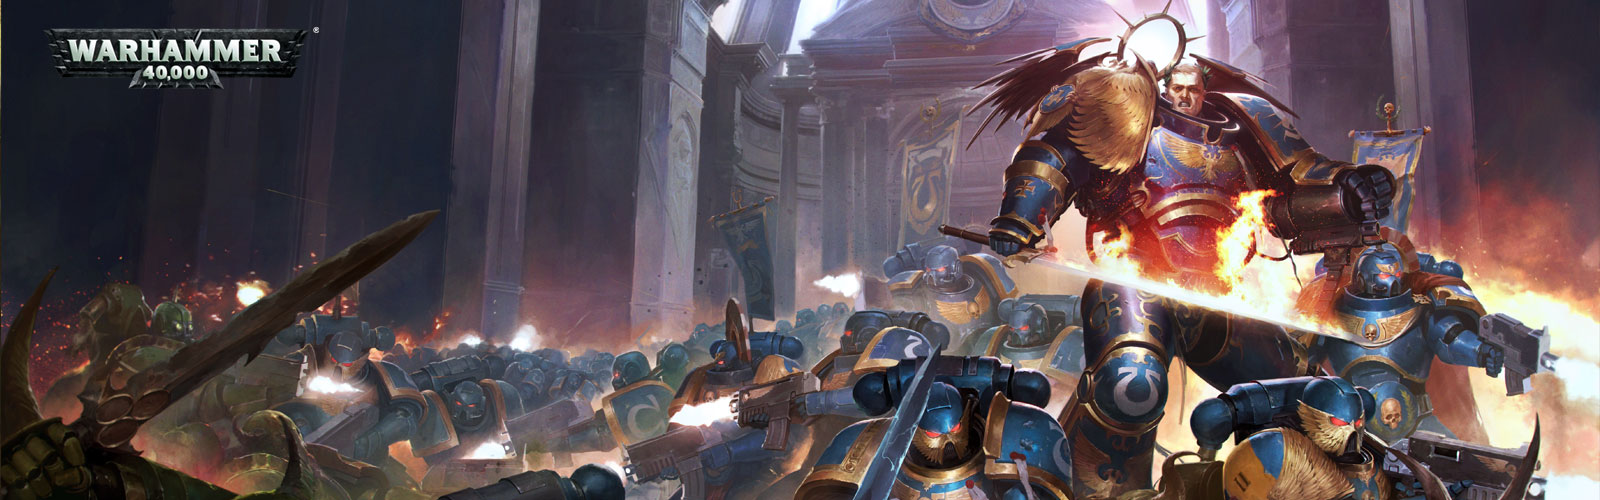 WARHAMMER ART  The official collection of iconic artwork 1600x500